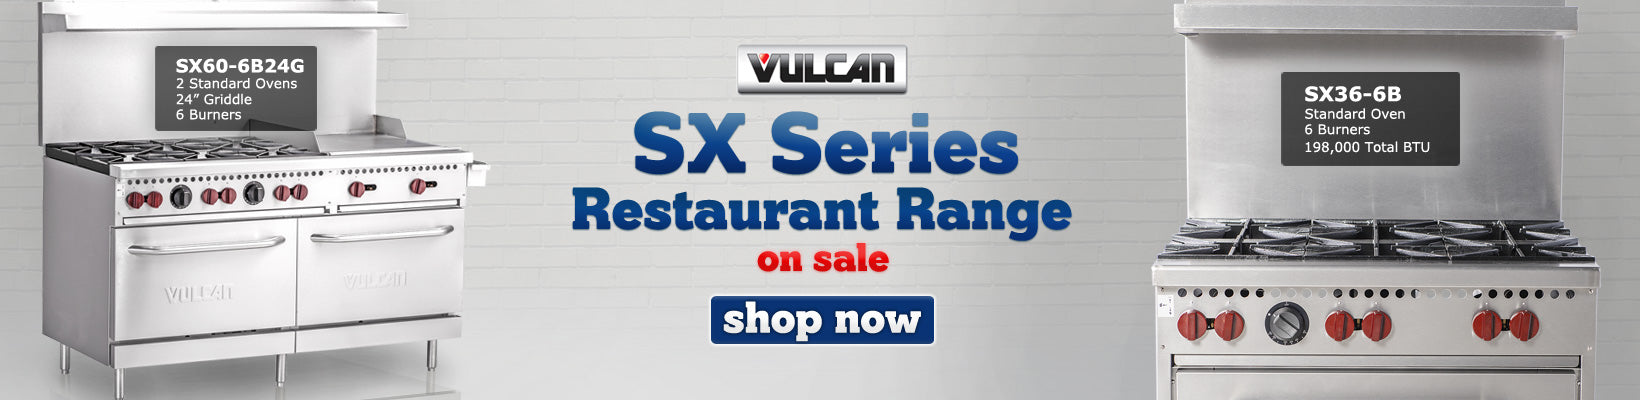 sx series commercial range